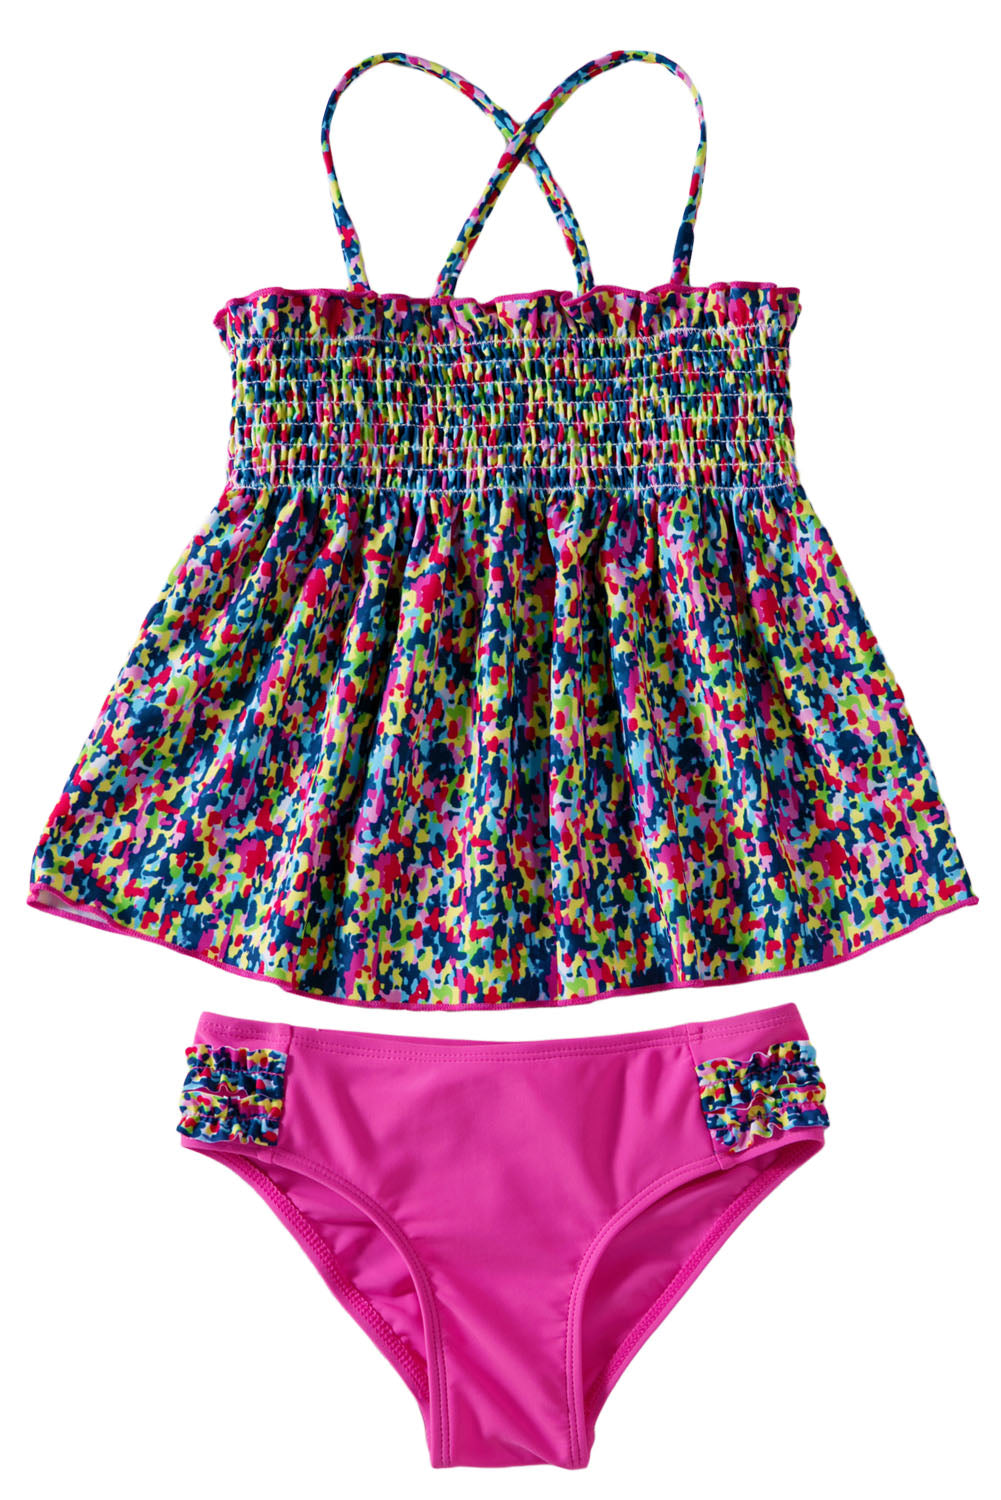 Little Girls' Boho Two Piece Swimsuit Set Girls Swimsuits Discount Designer Fashion Clothes Shoes Bags Women Men Kids Children Black Owned Business